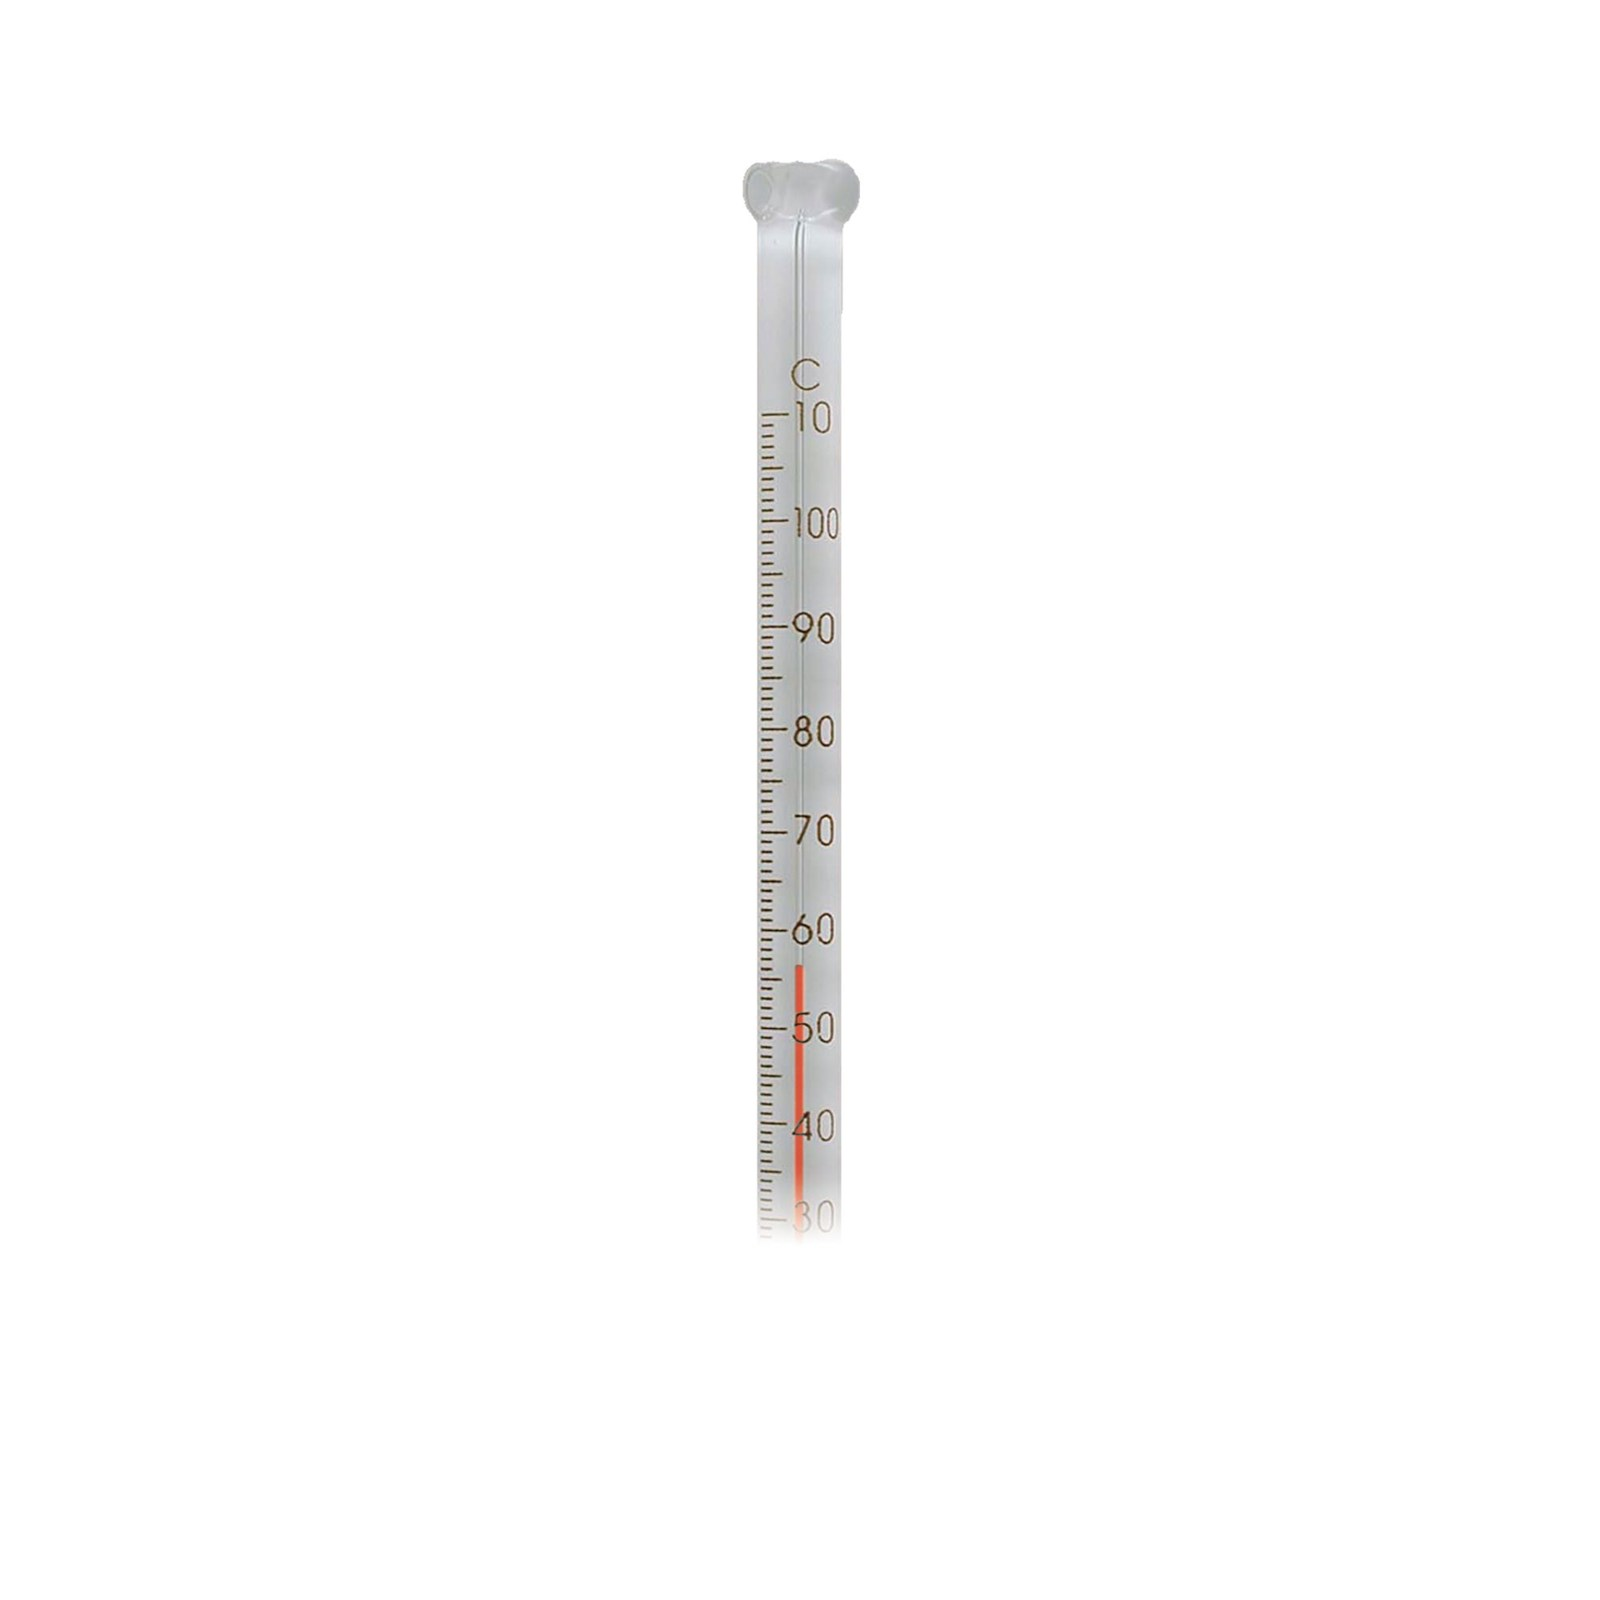 Experiments Instruments Measurement: Thermometer, Ungraduated